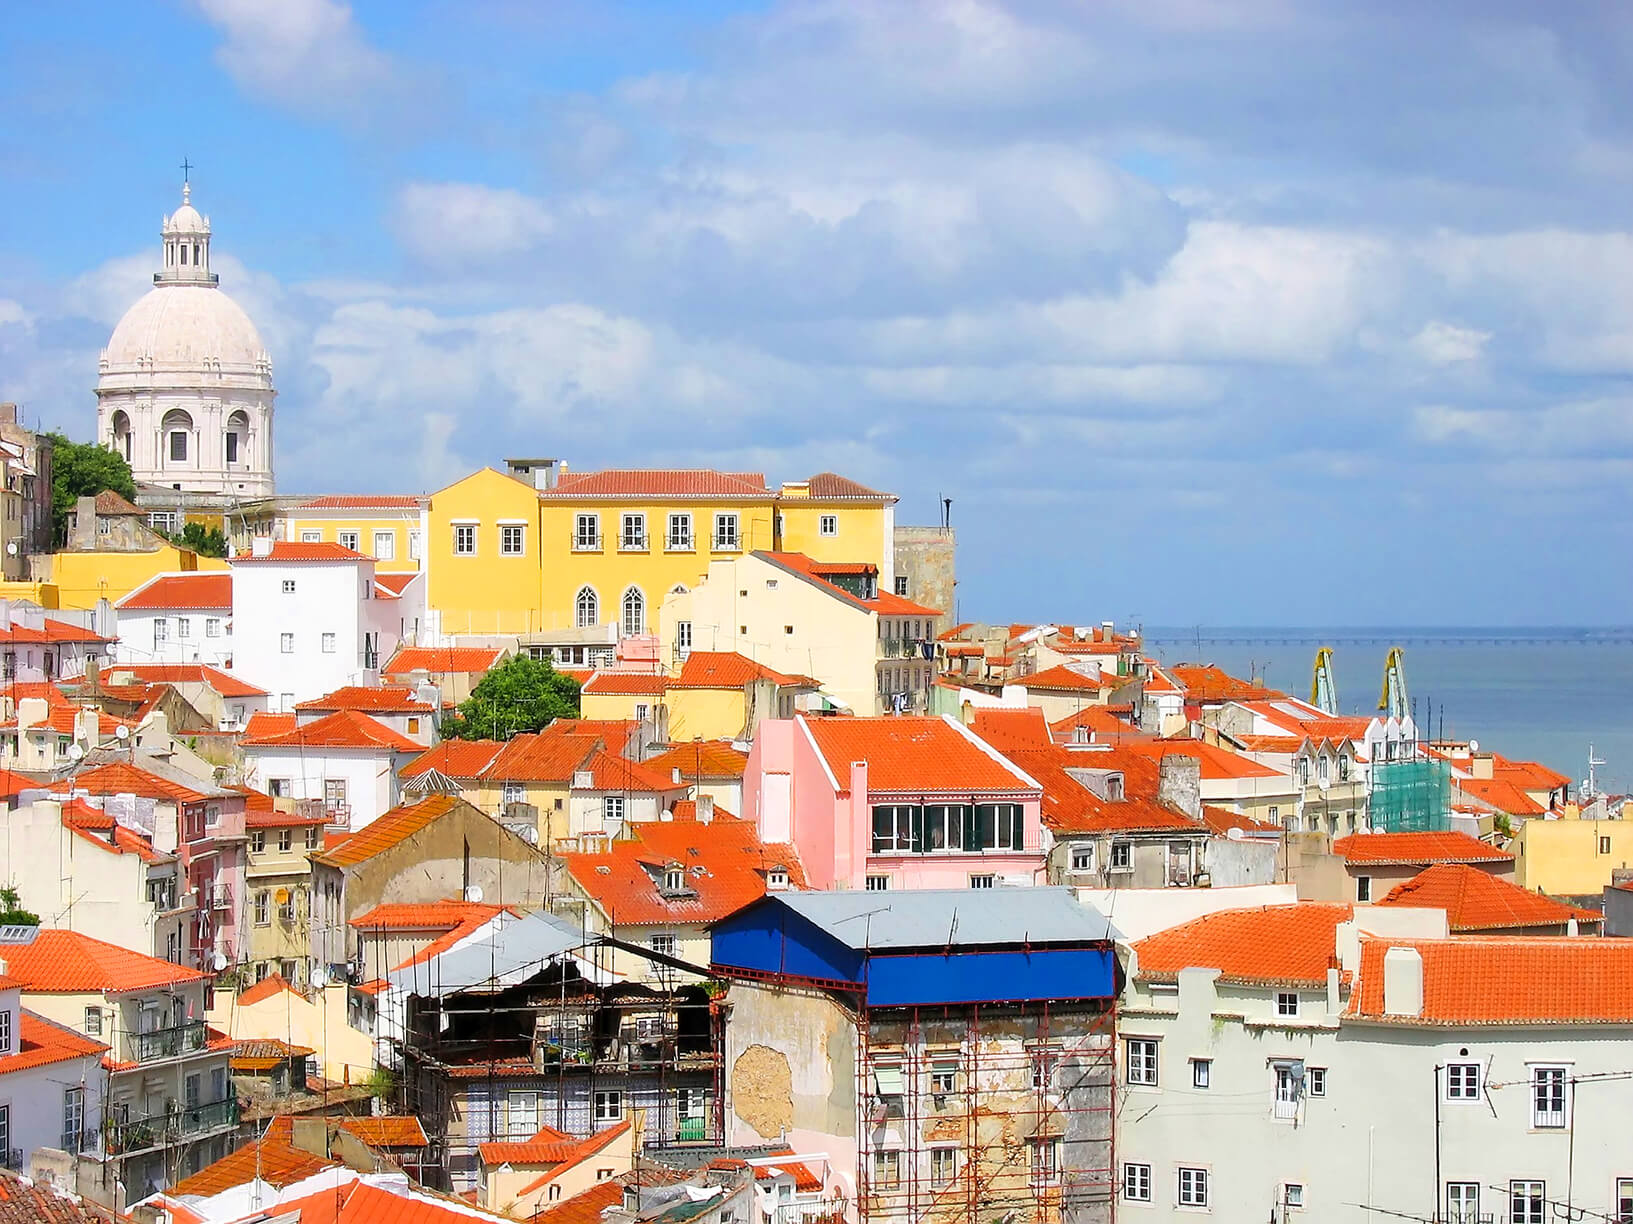 HOT!! SUMMER: Boston to Lisbon, Portugal for only $287 roundtrip (Aug-Nov dates)